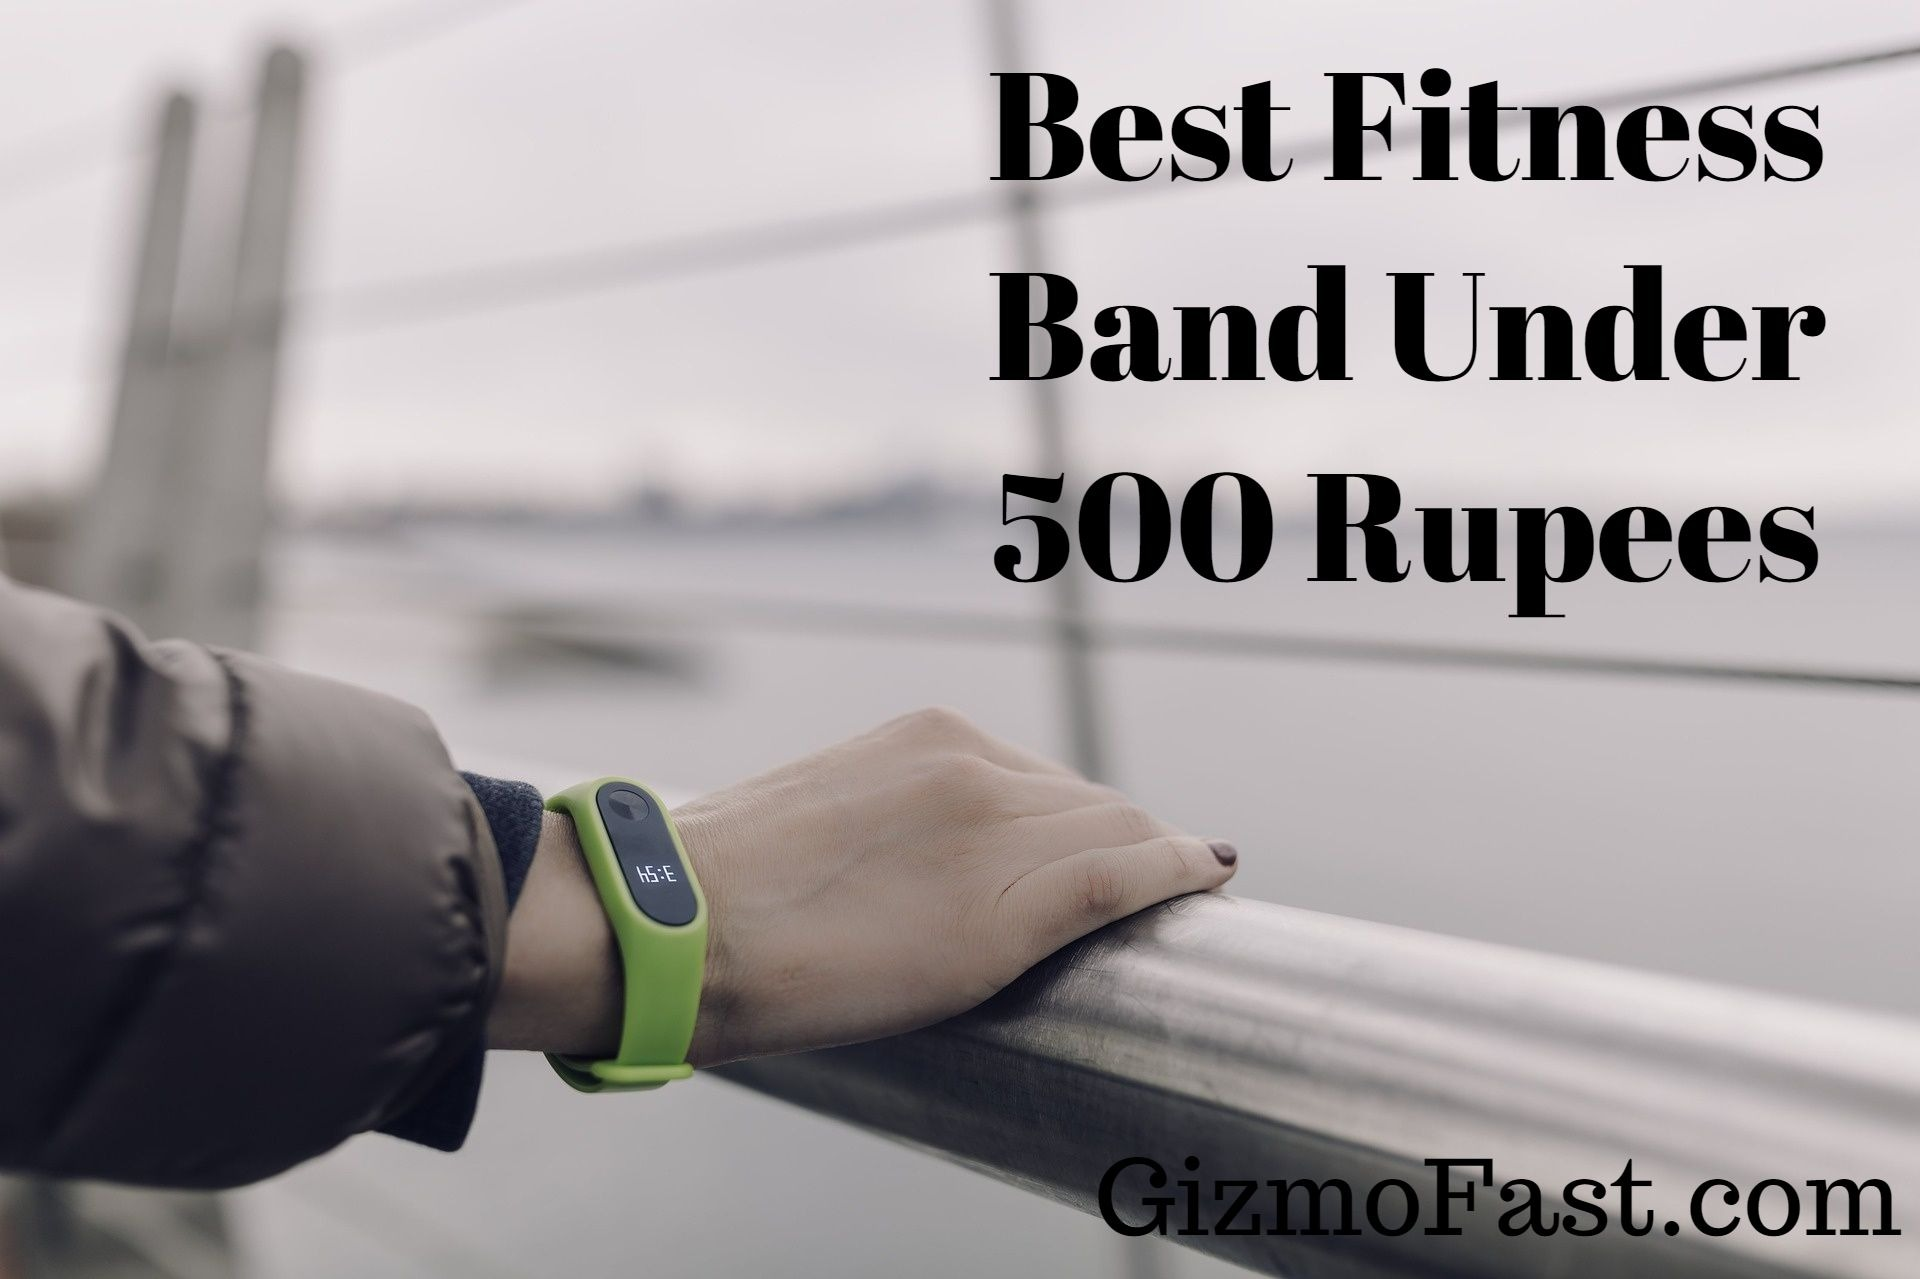 Best Fitness Band under 500 Rupees